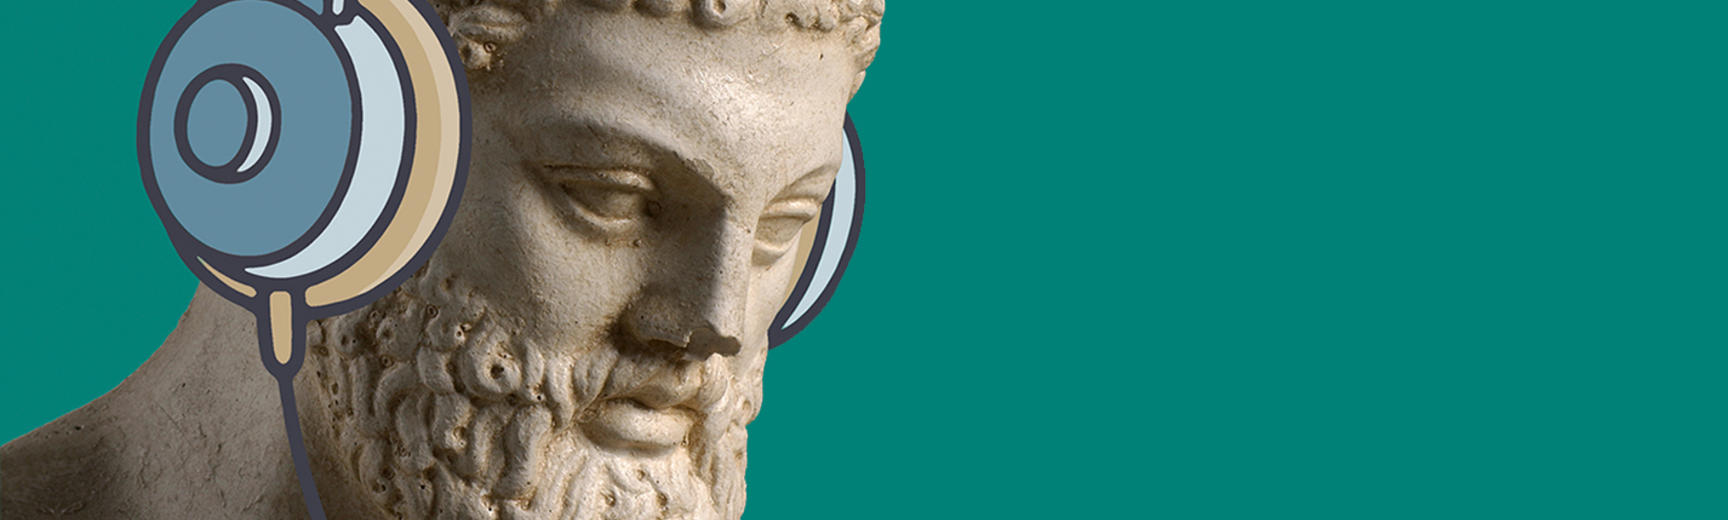 Cast of a sculpture, illustrated to be wearing headphones